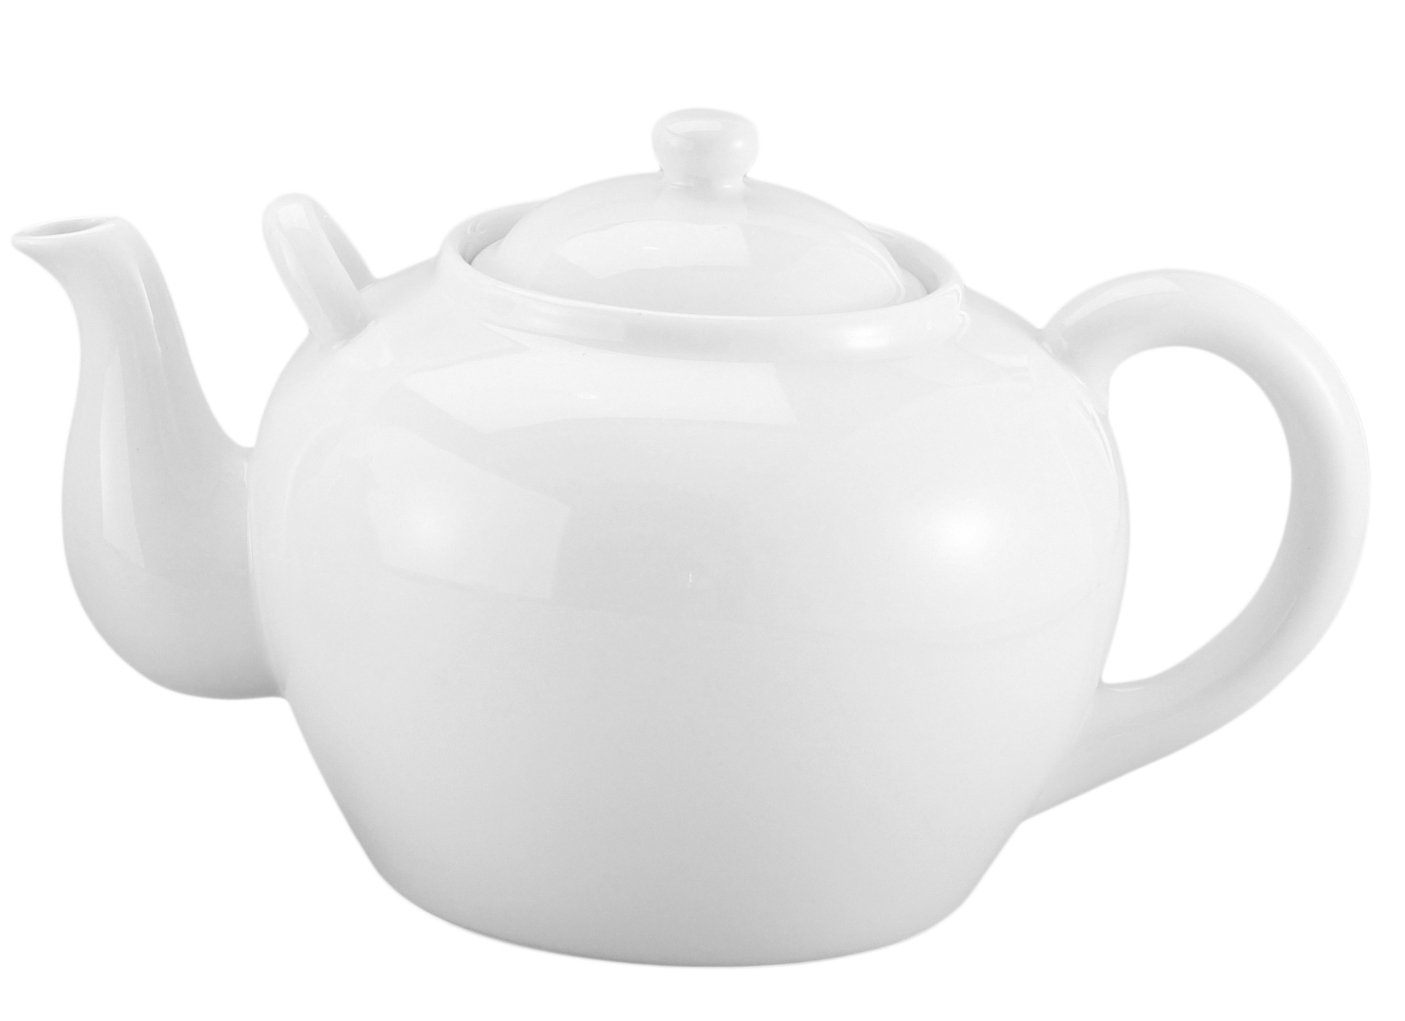 HIC Brands that Cook 71/372-3W White Porcelain Teapot w/ Infuser - 16 ounce